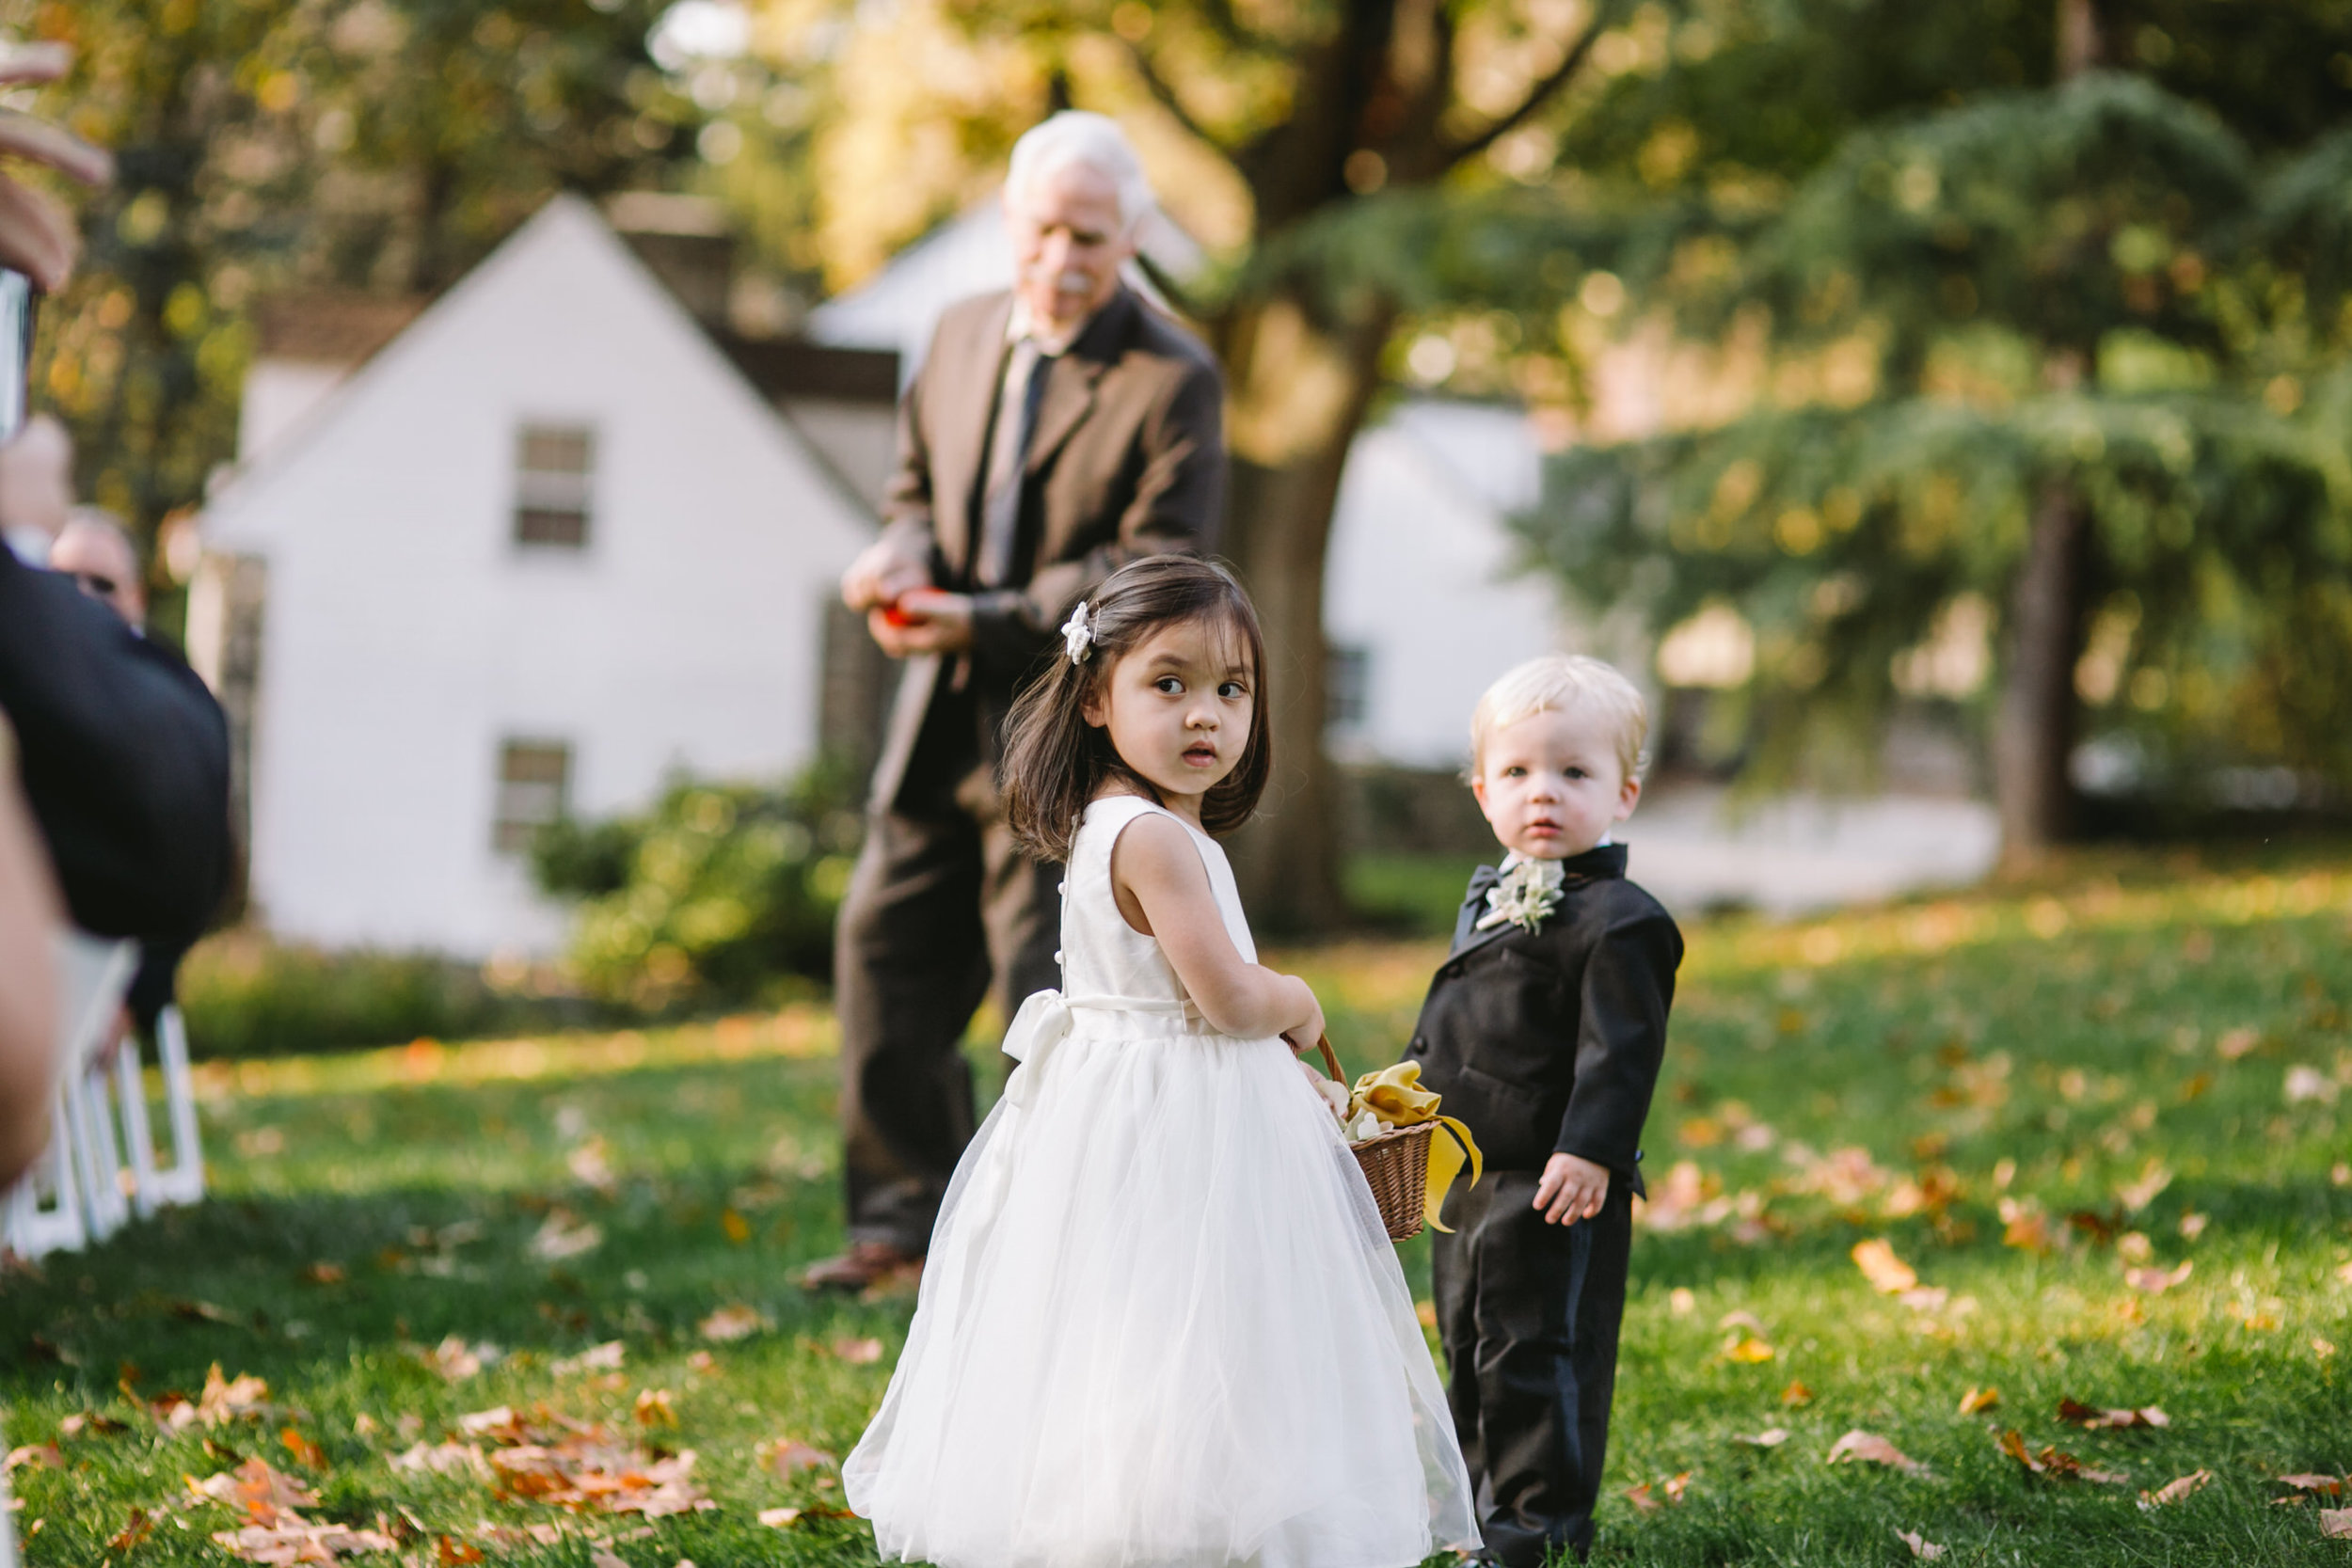 18 Appleford Estate Wedding Outdoor Ceremony Ring Bearer Flower Girl.jpg